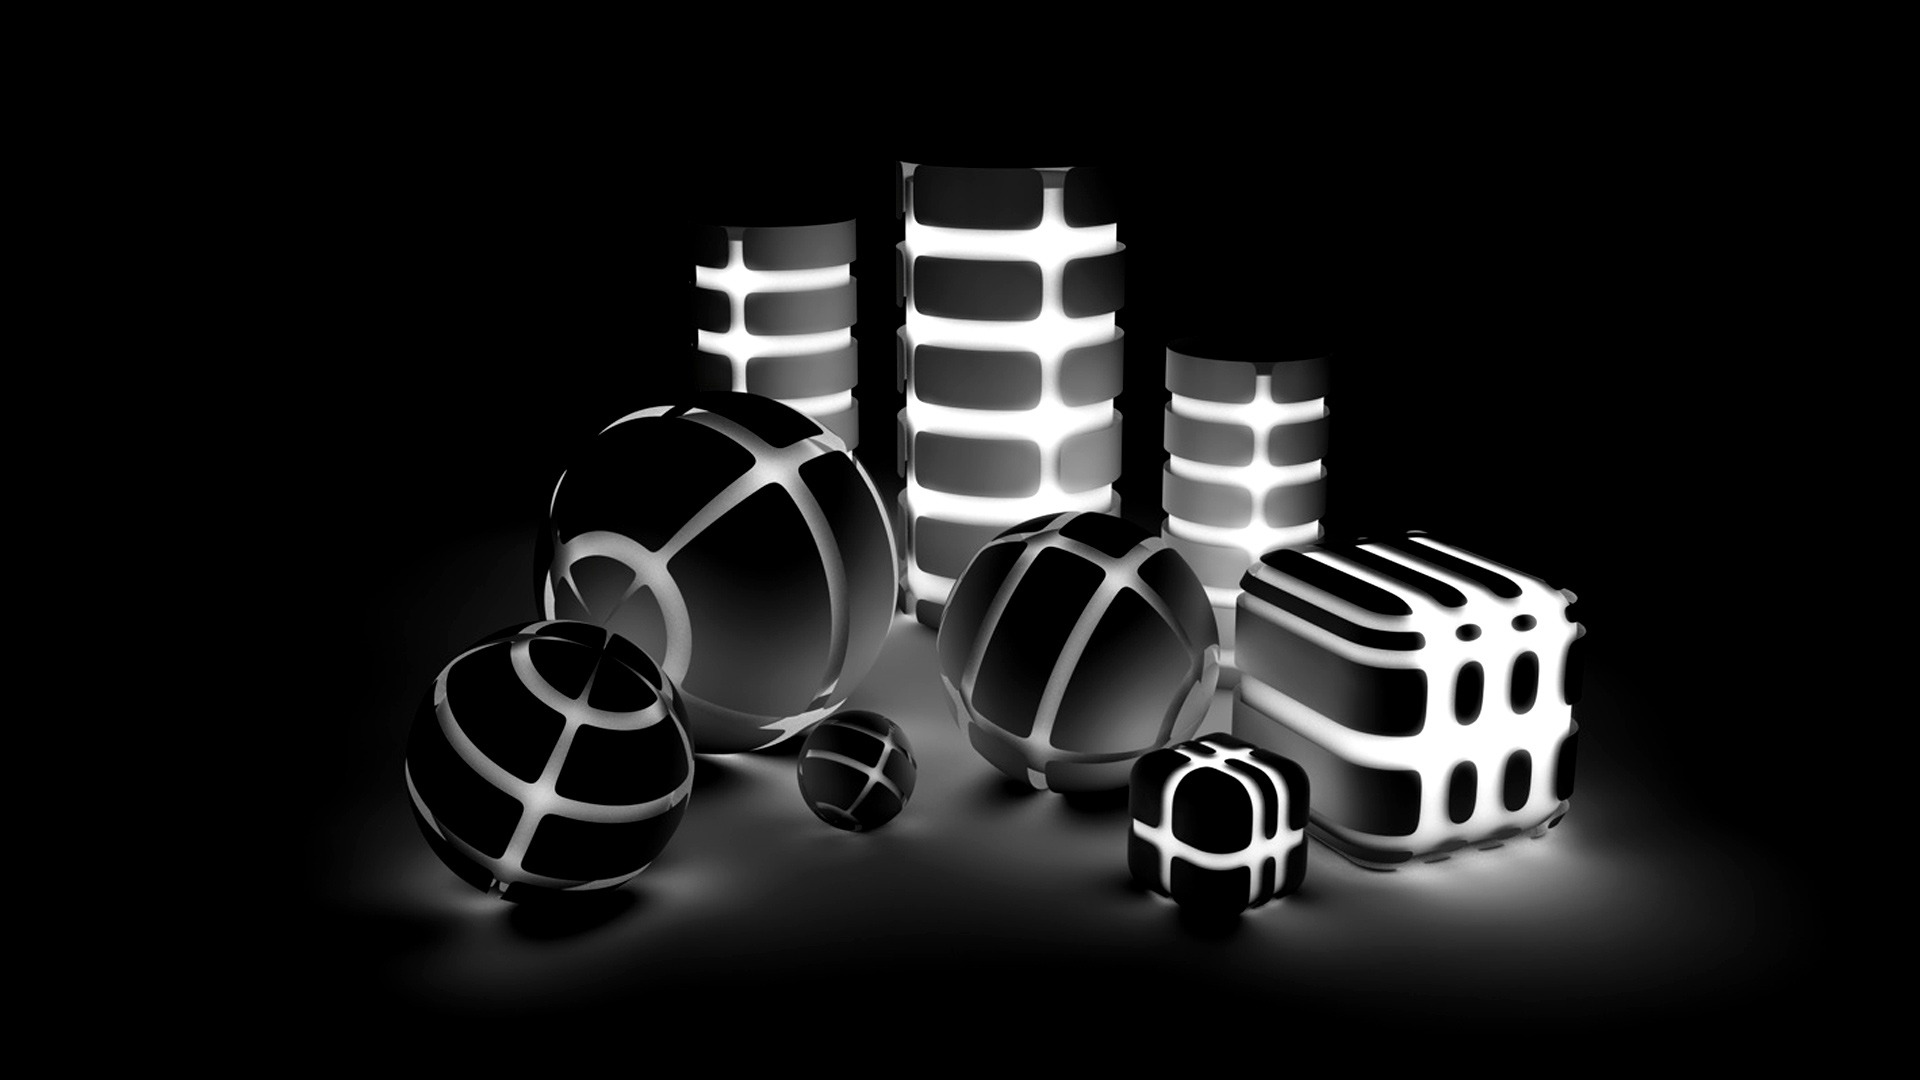 3D Wallpapers Black and White HD Wallpaper 3D Wallpapers Black and 1920x1080